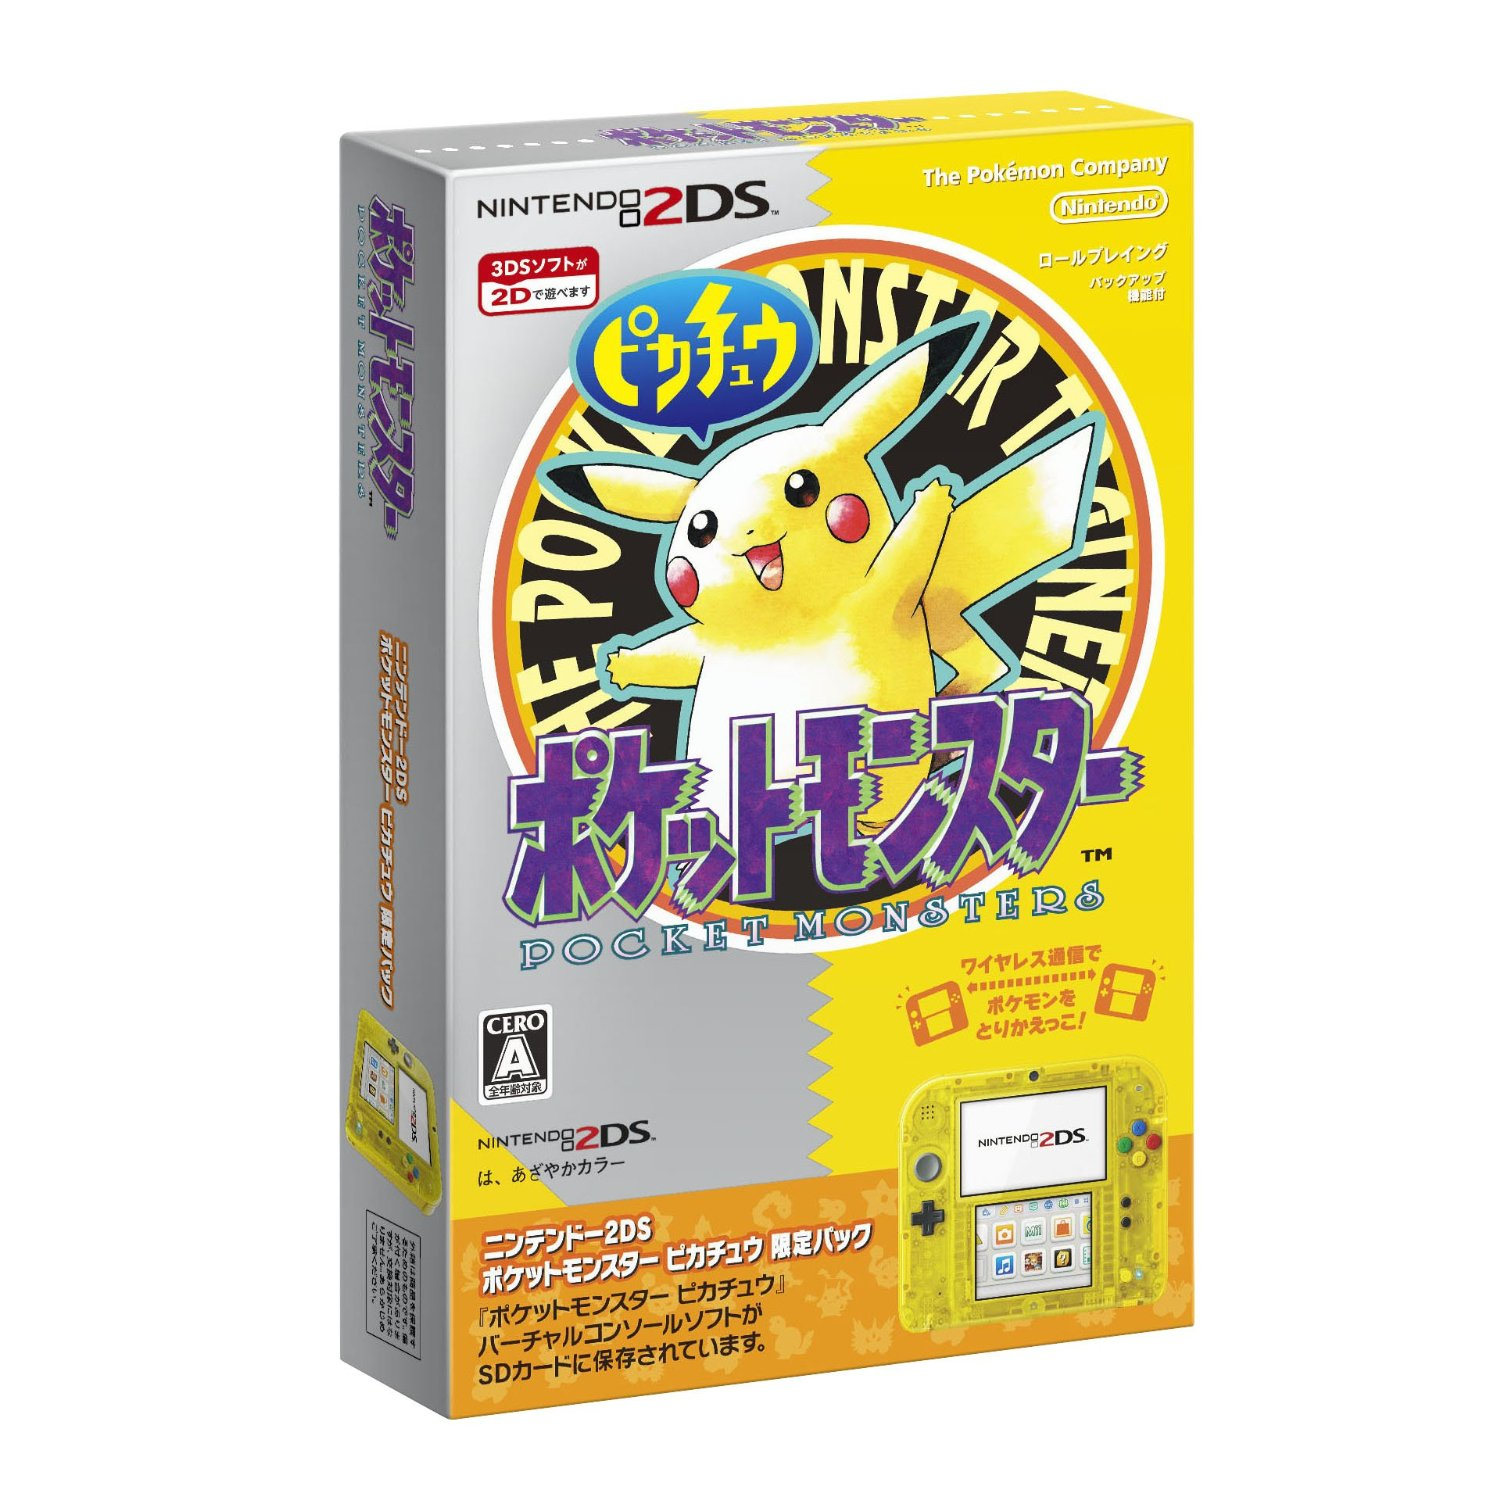 Nintendo 2DS Pokemon Pikachu Limited Edition